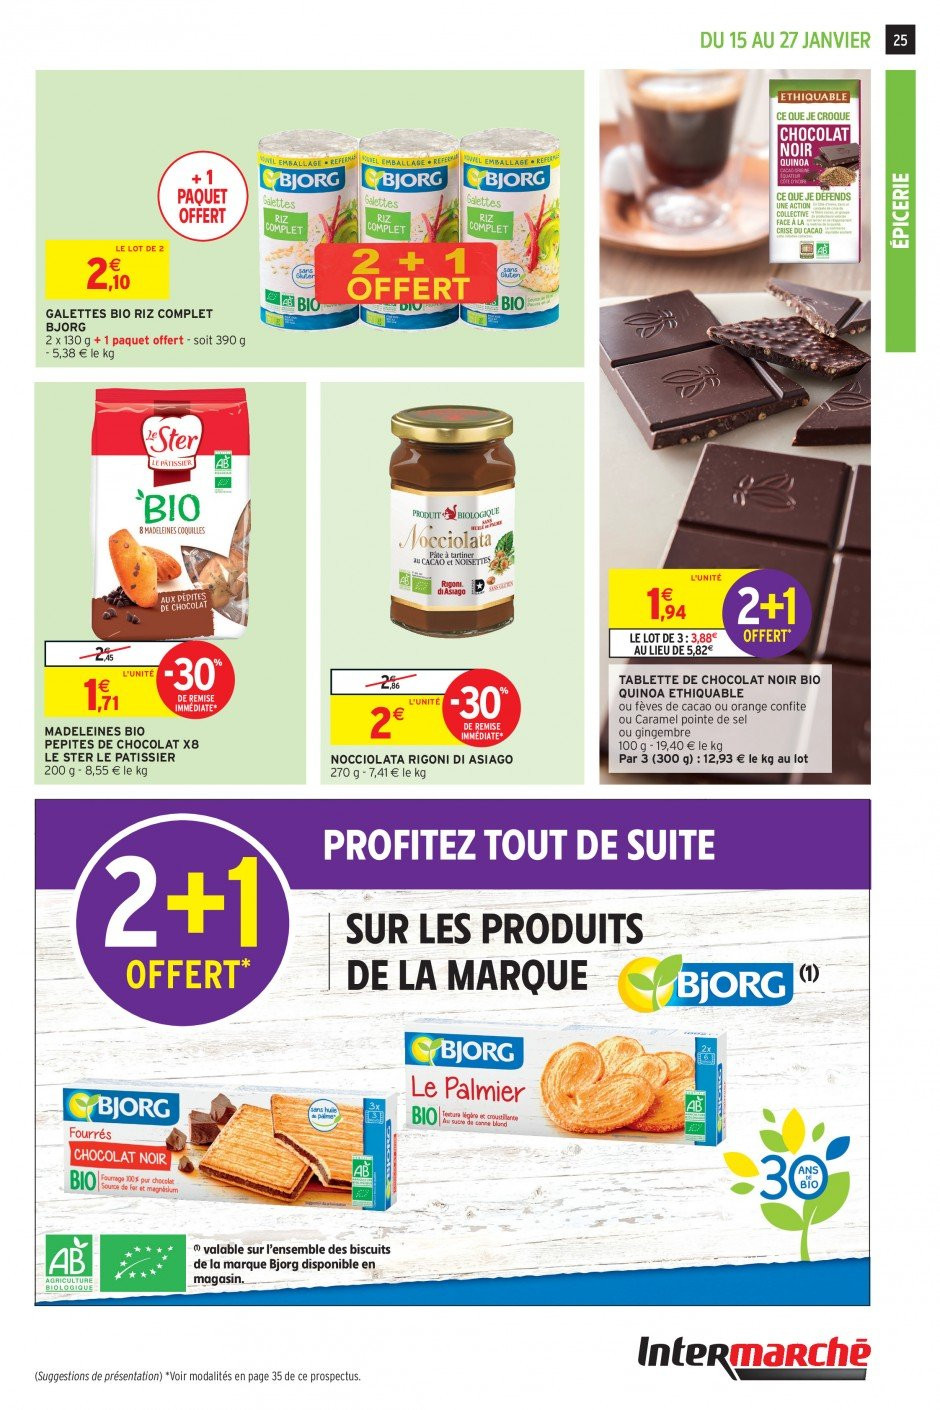 Catalogue Intermarché - 15.01.2019 - 27.01.2019. Page 25.